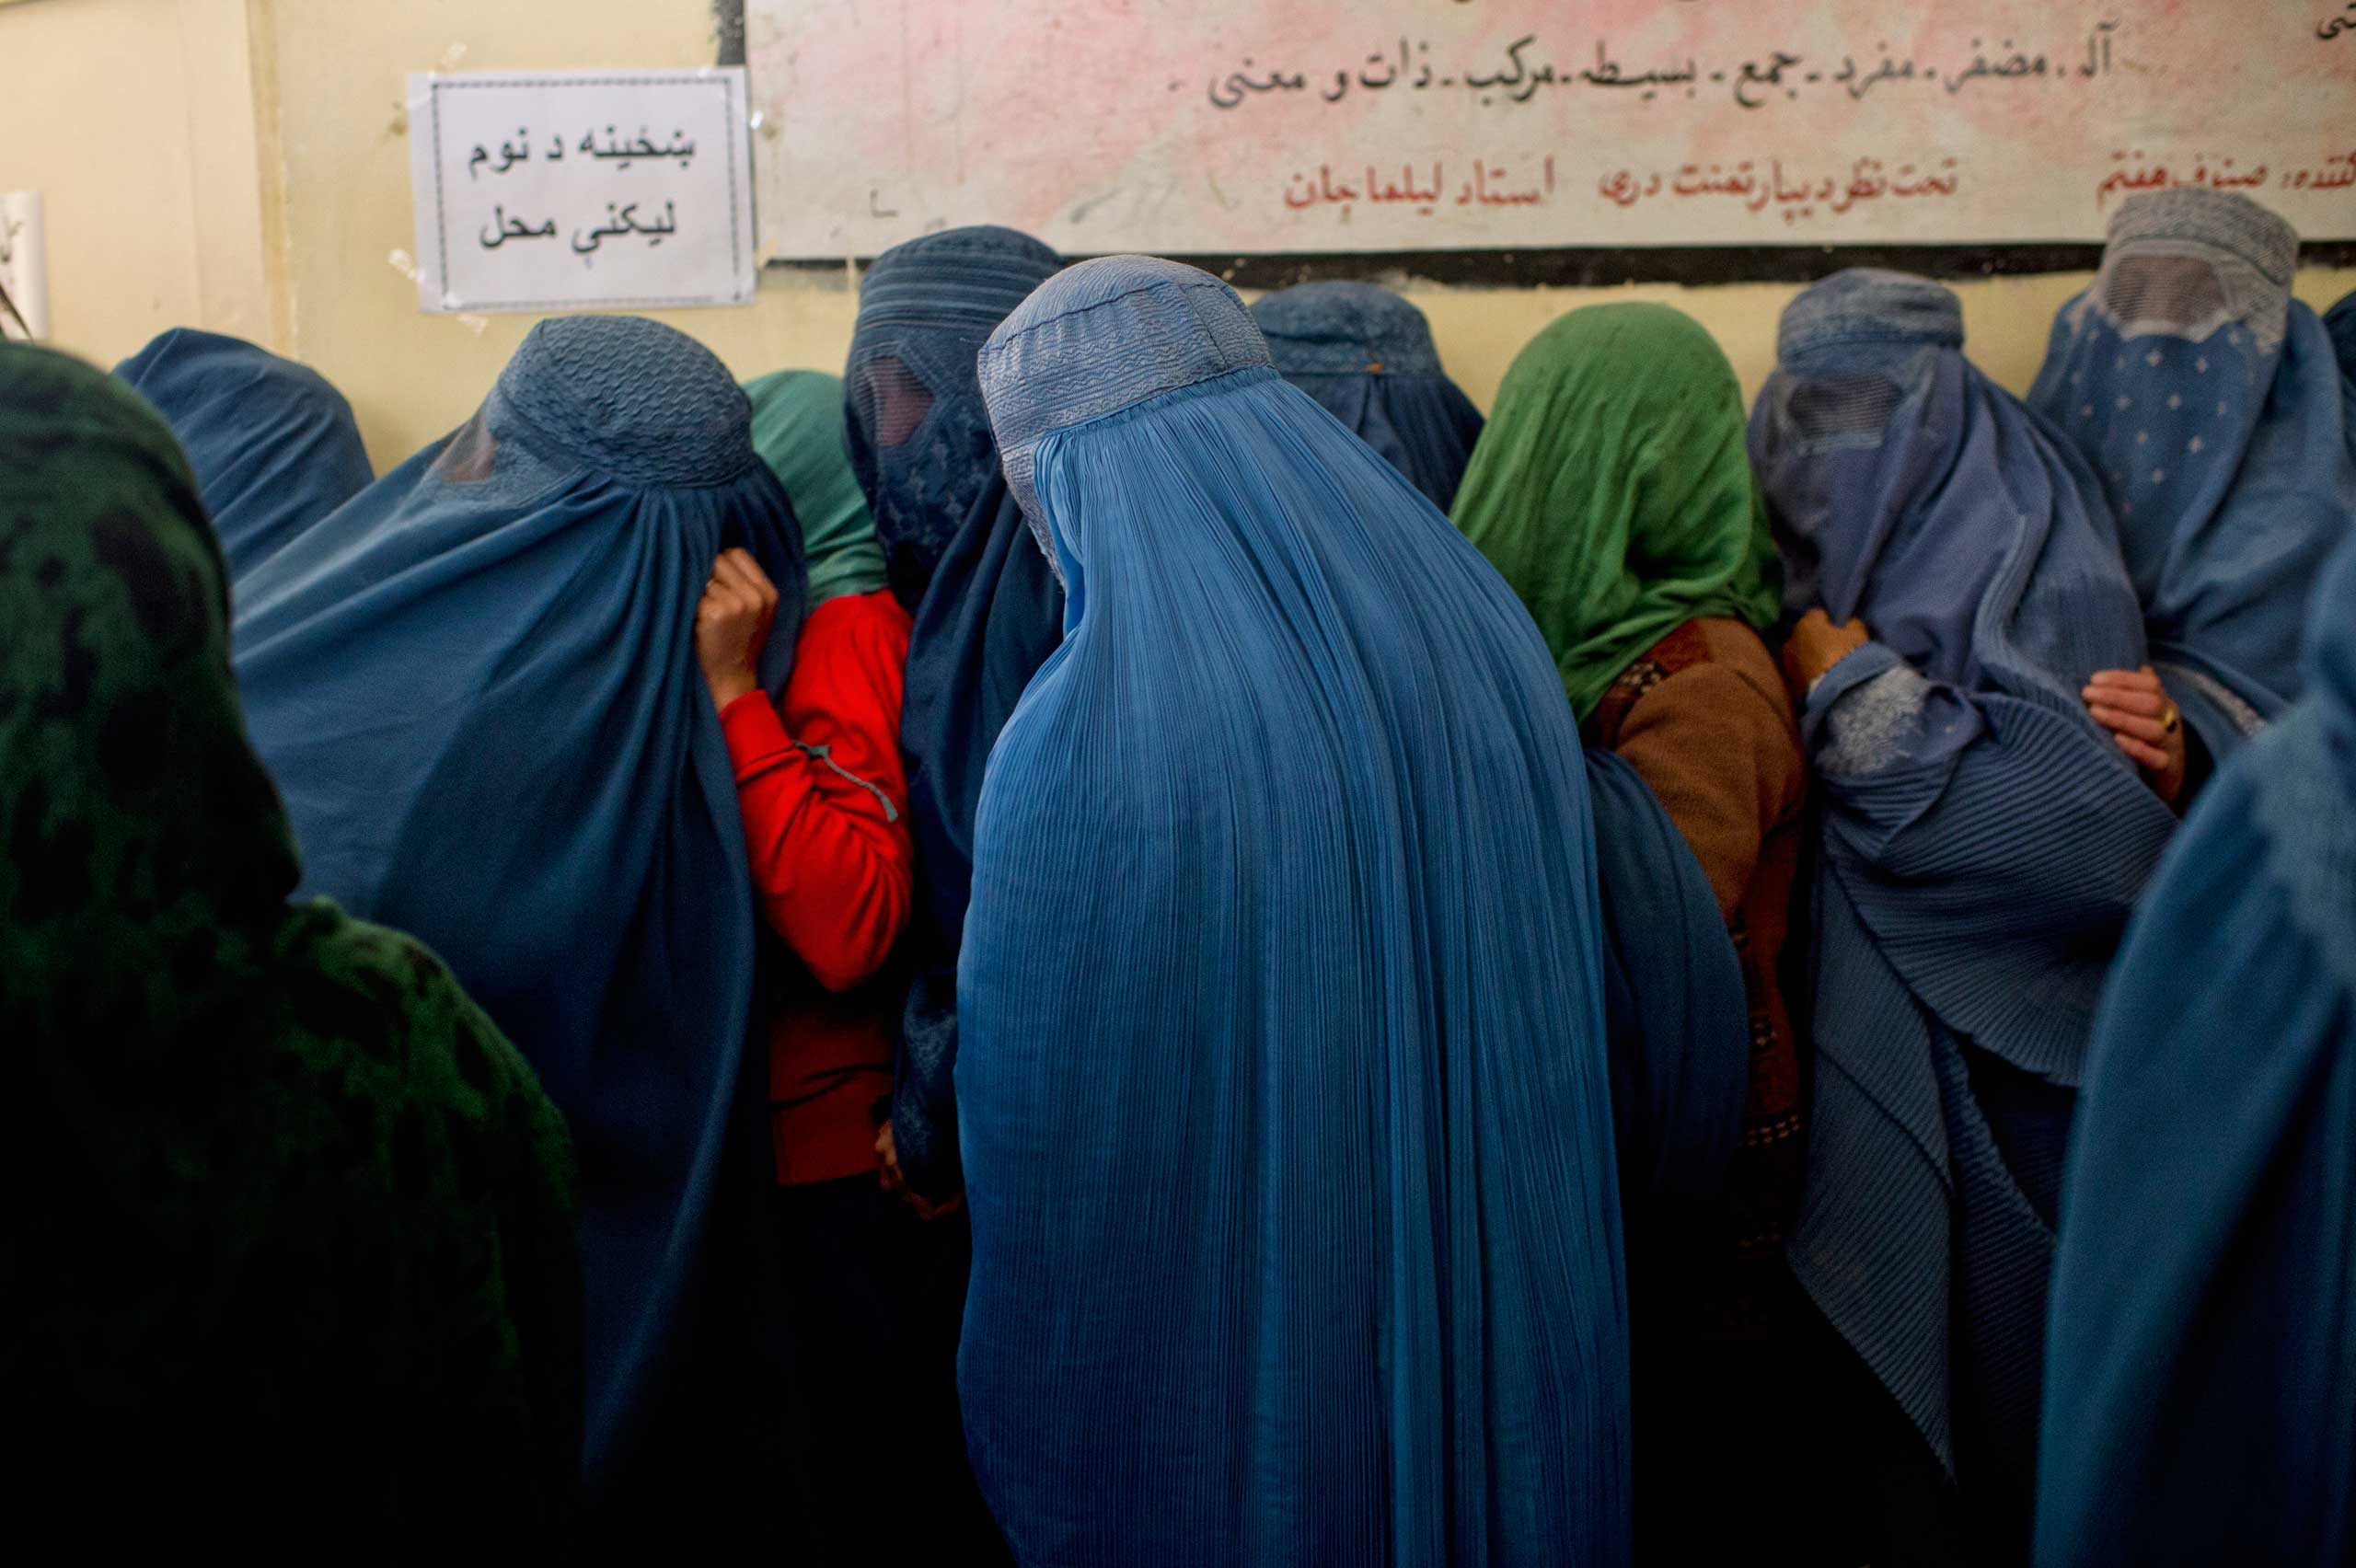 Afghans line up to register to vote for Presidential elections at a center run by the Afghan Independent Electoral Commission in Shah Shaheed, Kabul, Afghanistan, March 25, 2014.